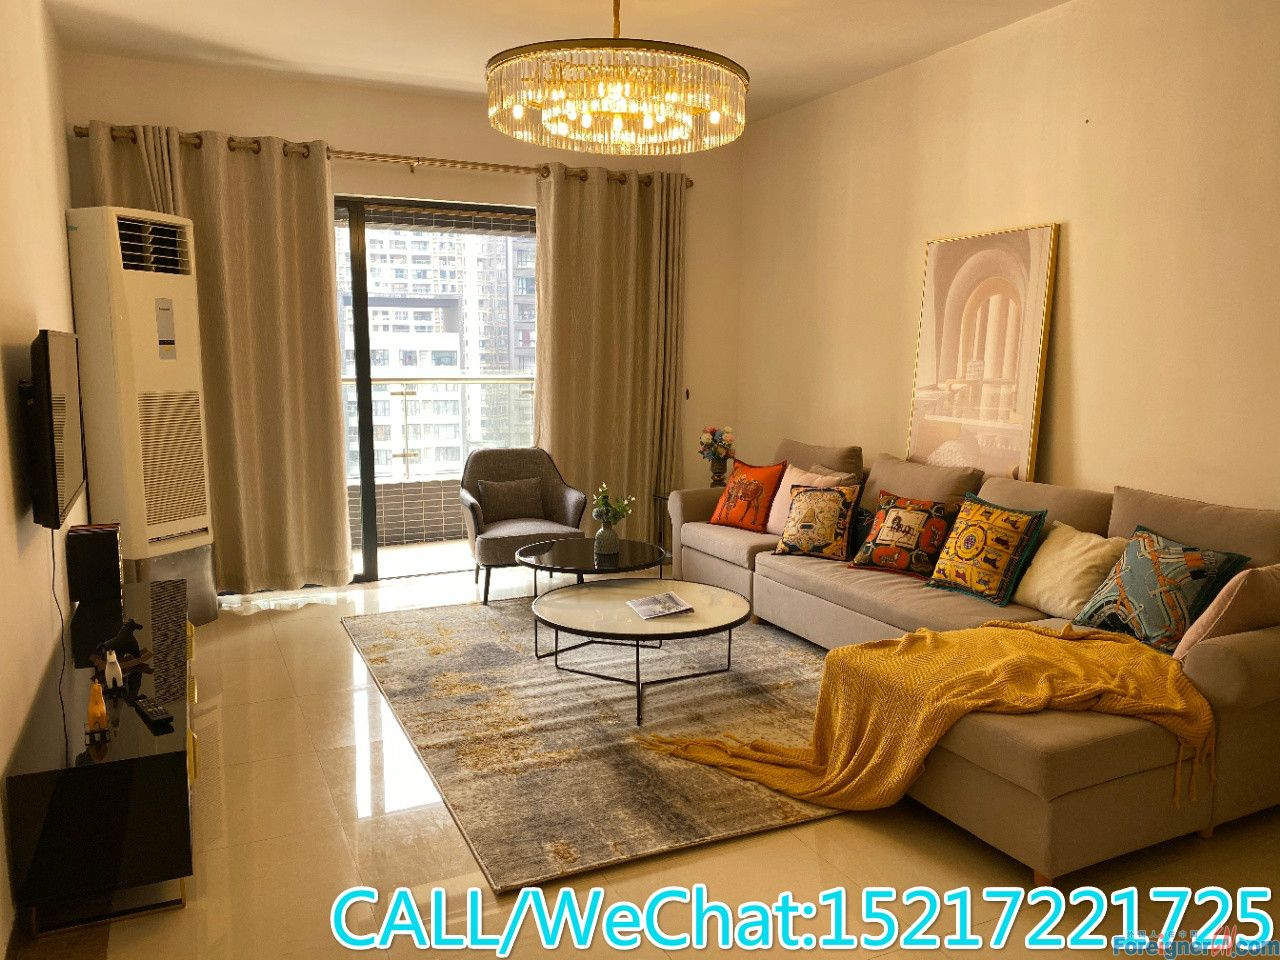 Nice and Modern/Clean and Bright/Large Kitchen/Fully Furnished/Good Price/Nice Owner.